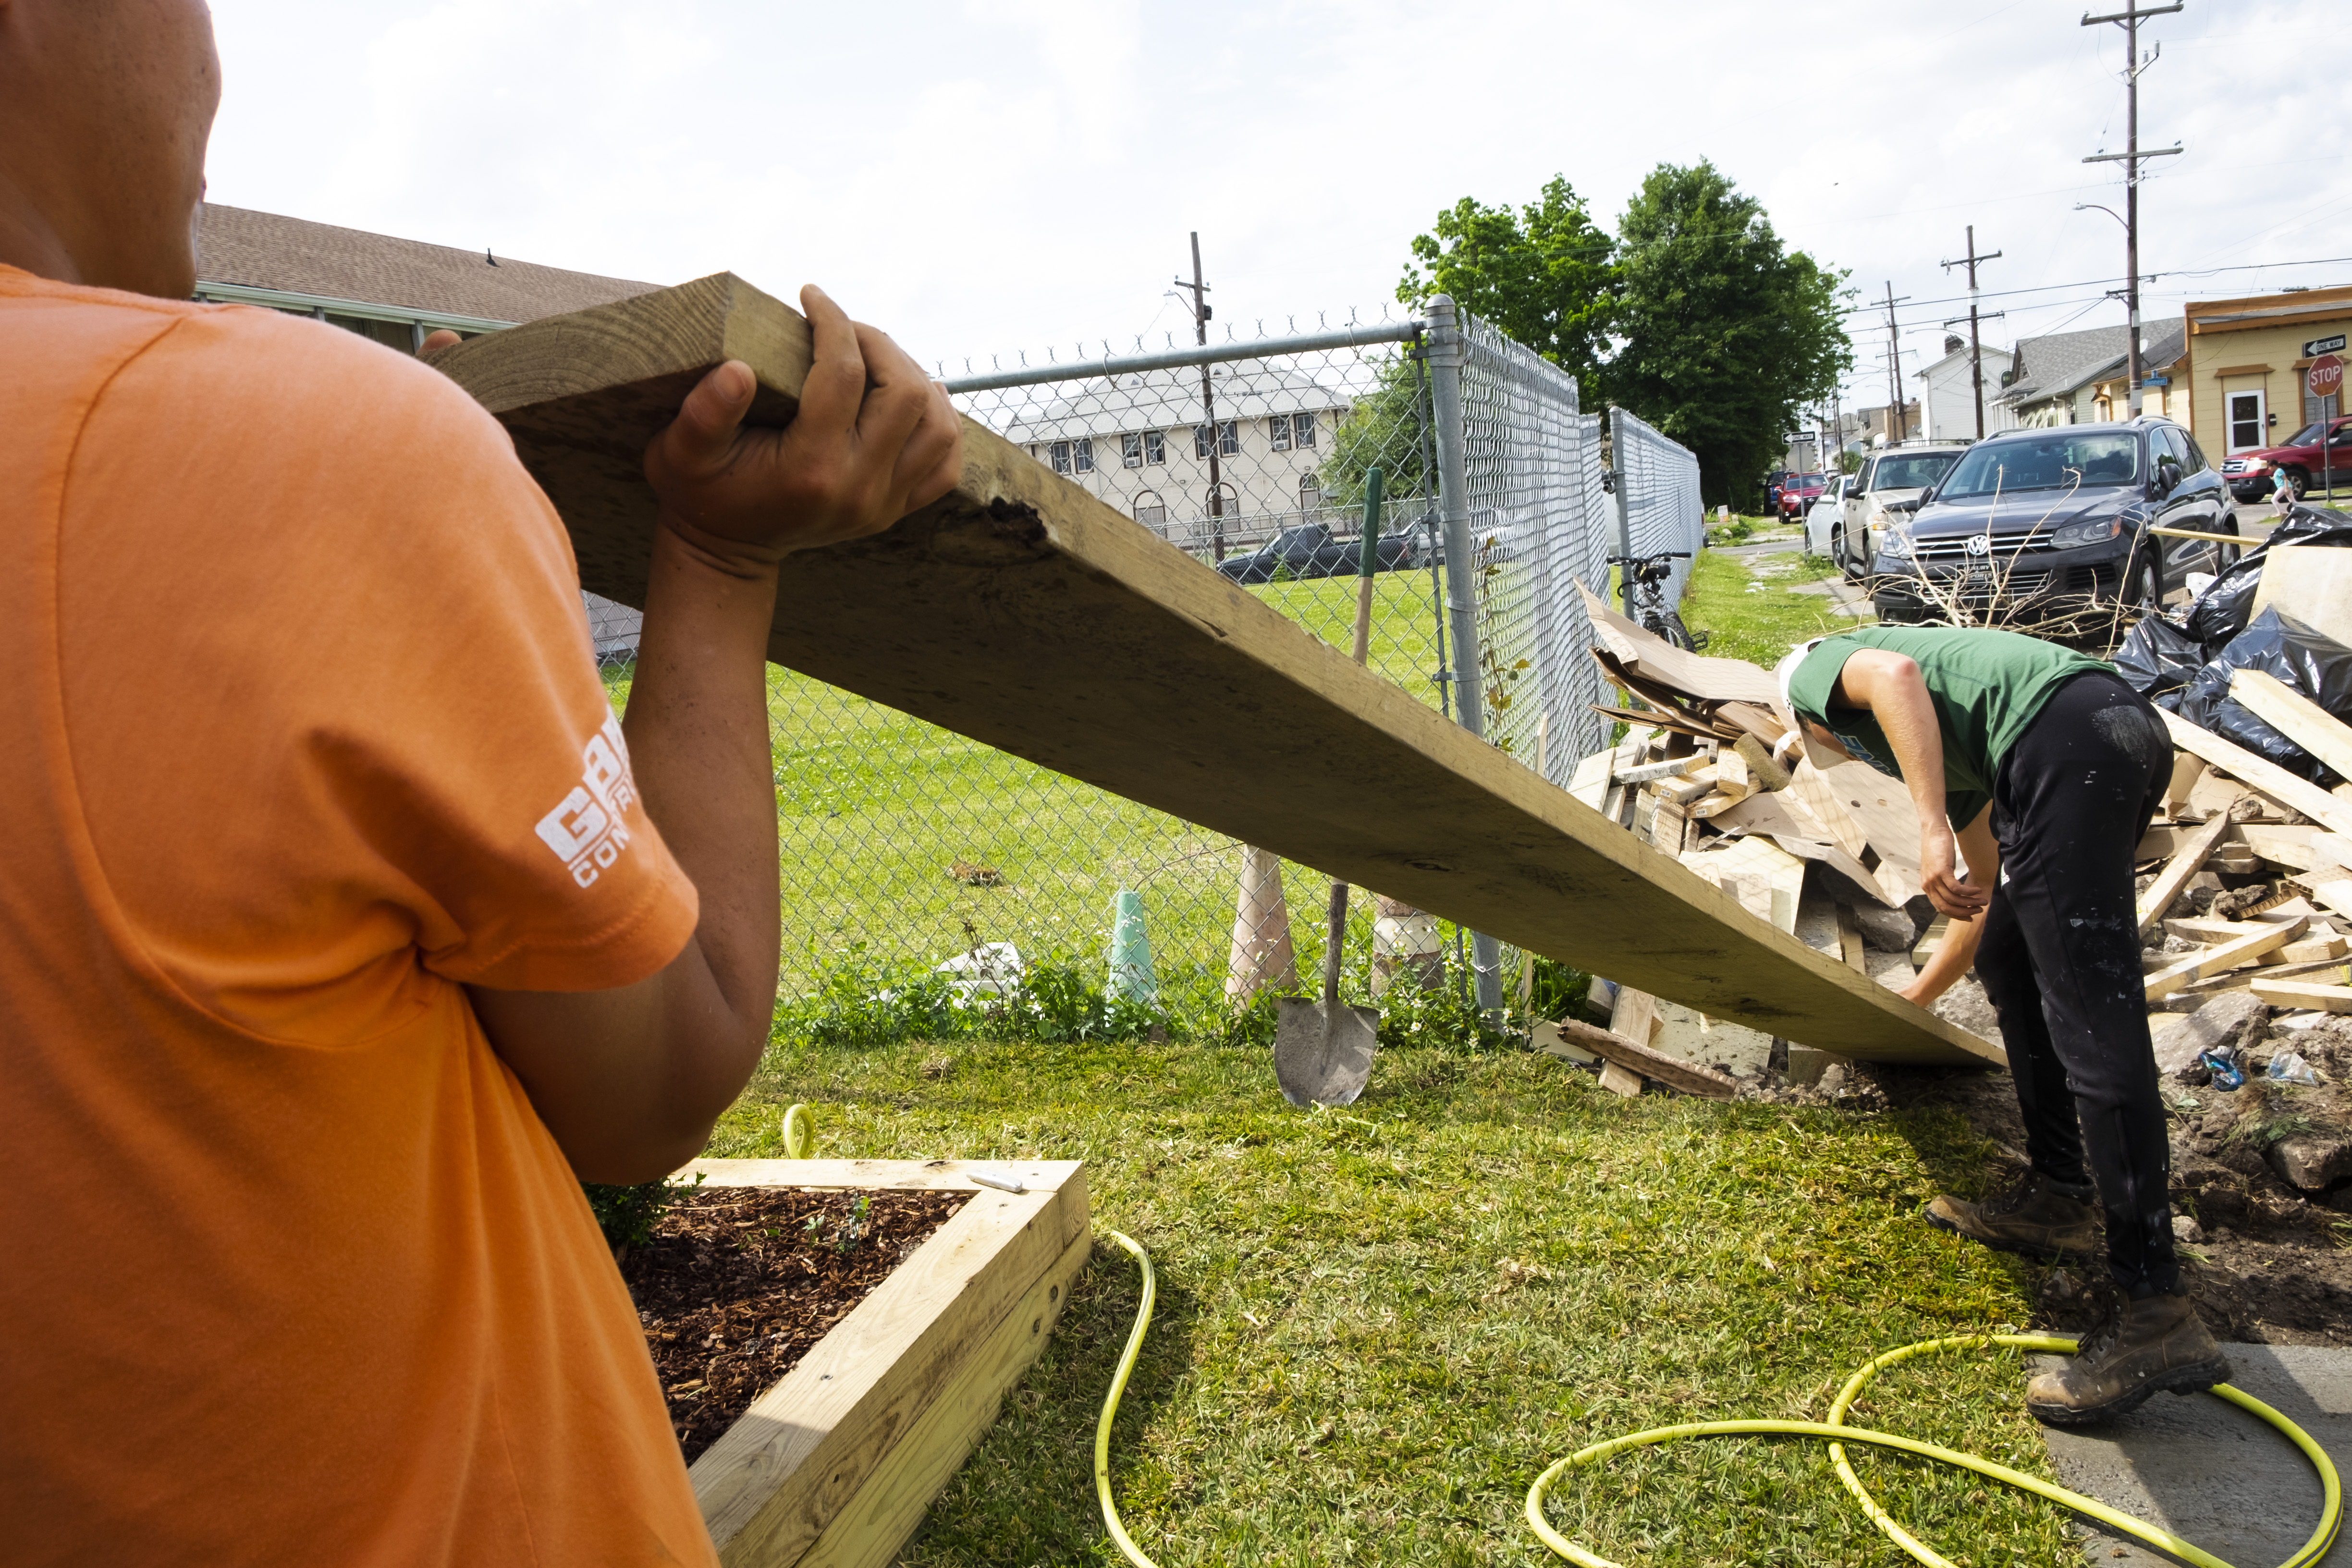 Photo of a first person perspective, lifting a long piece of wood on a construction site